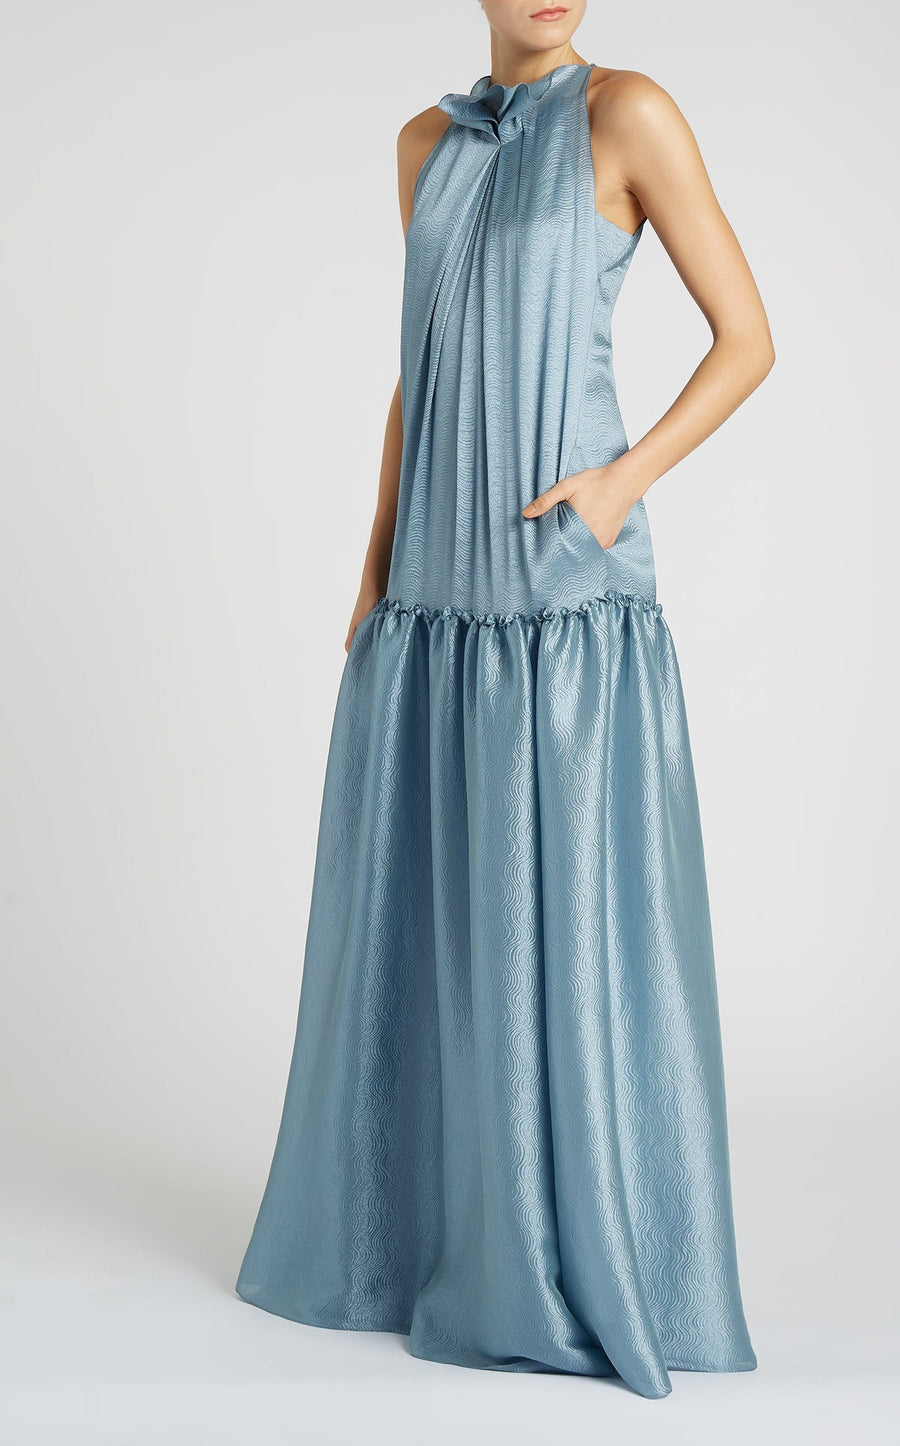 Ventana Gown